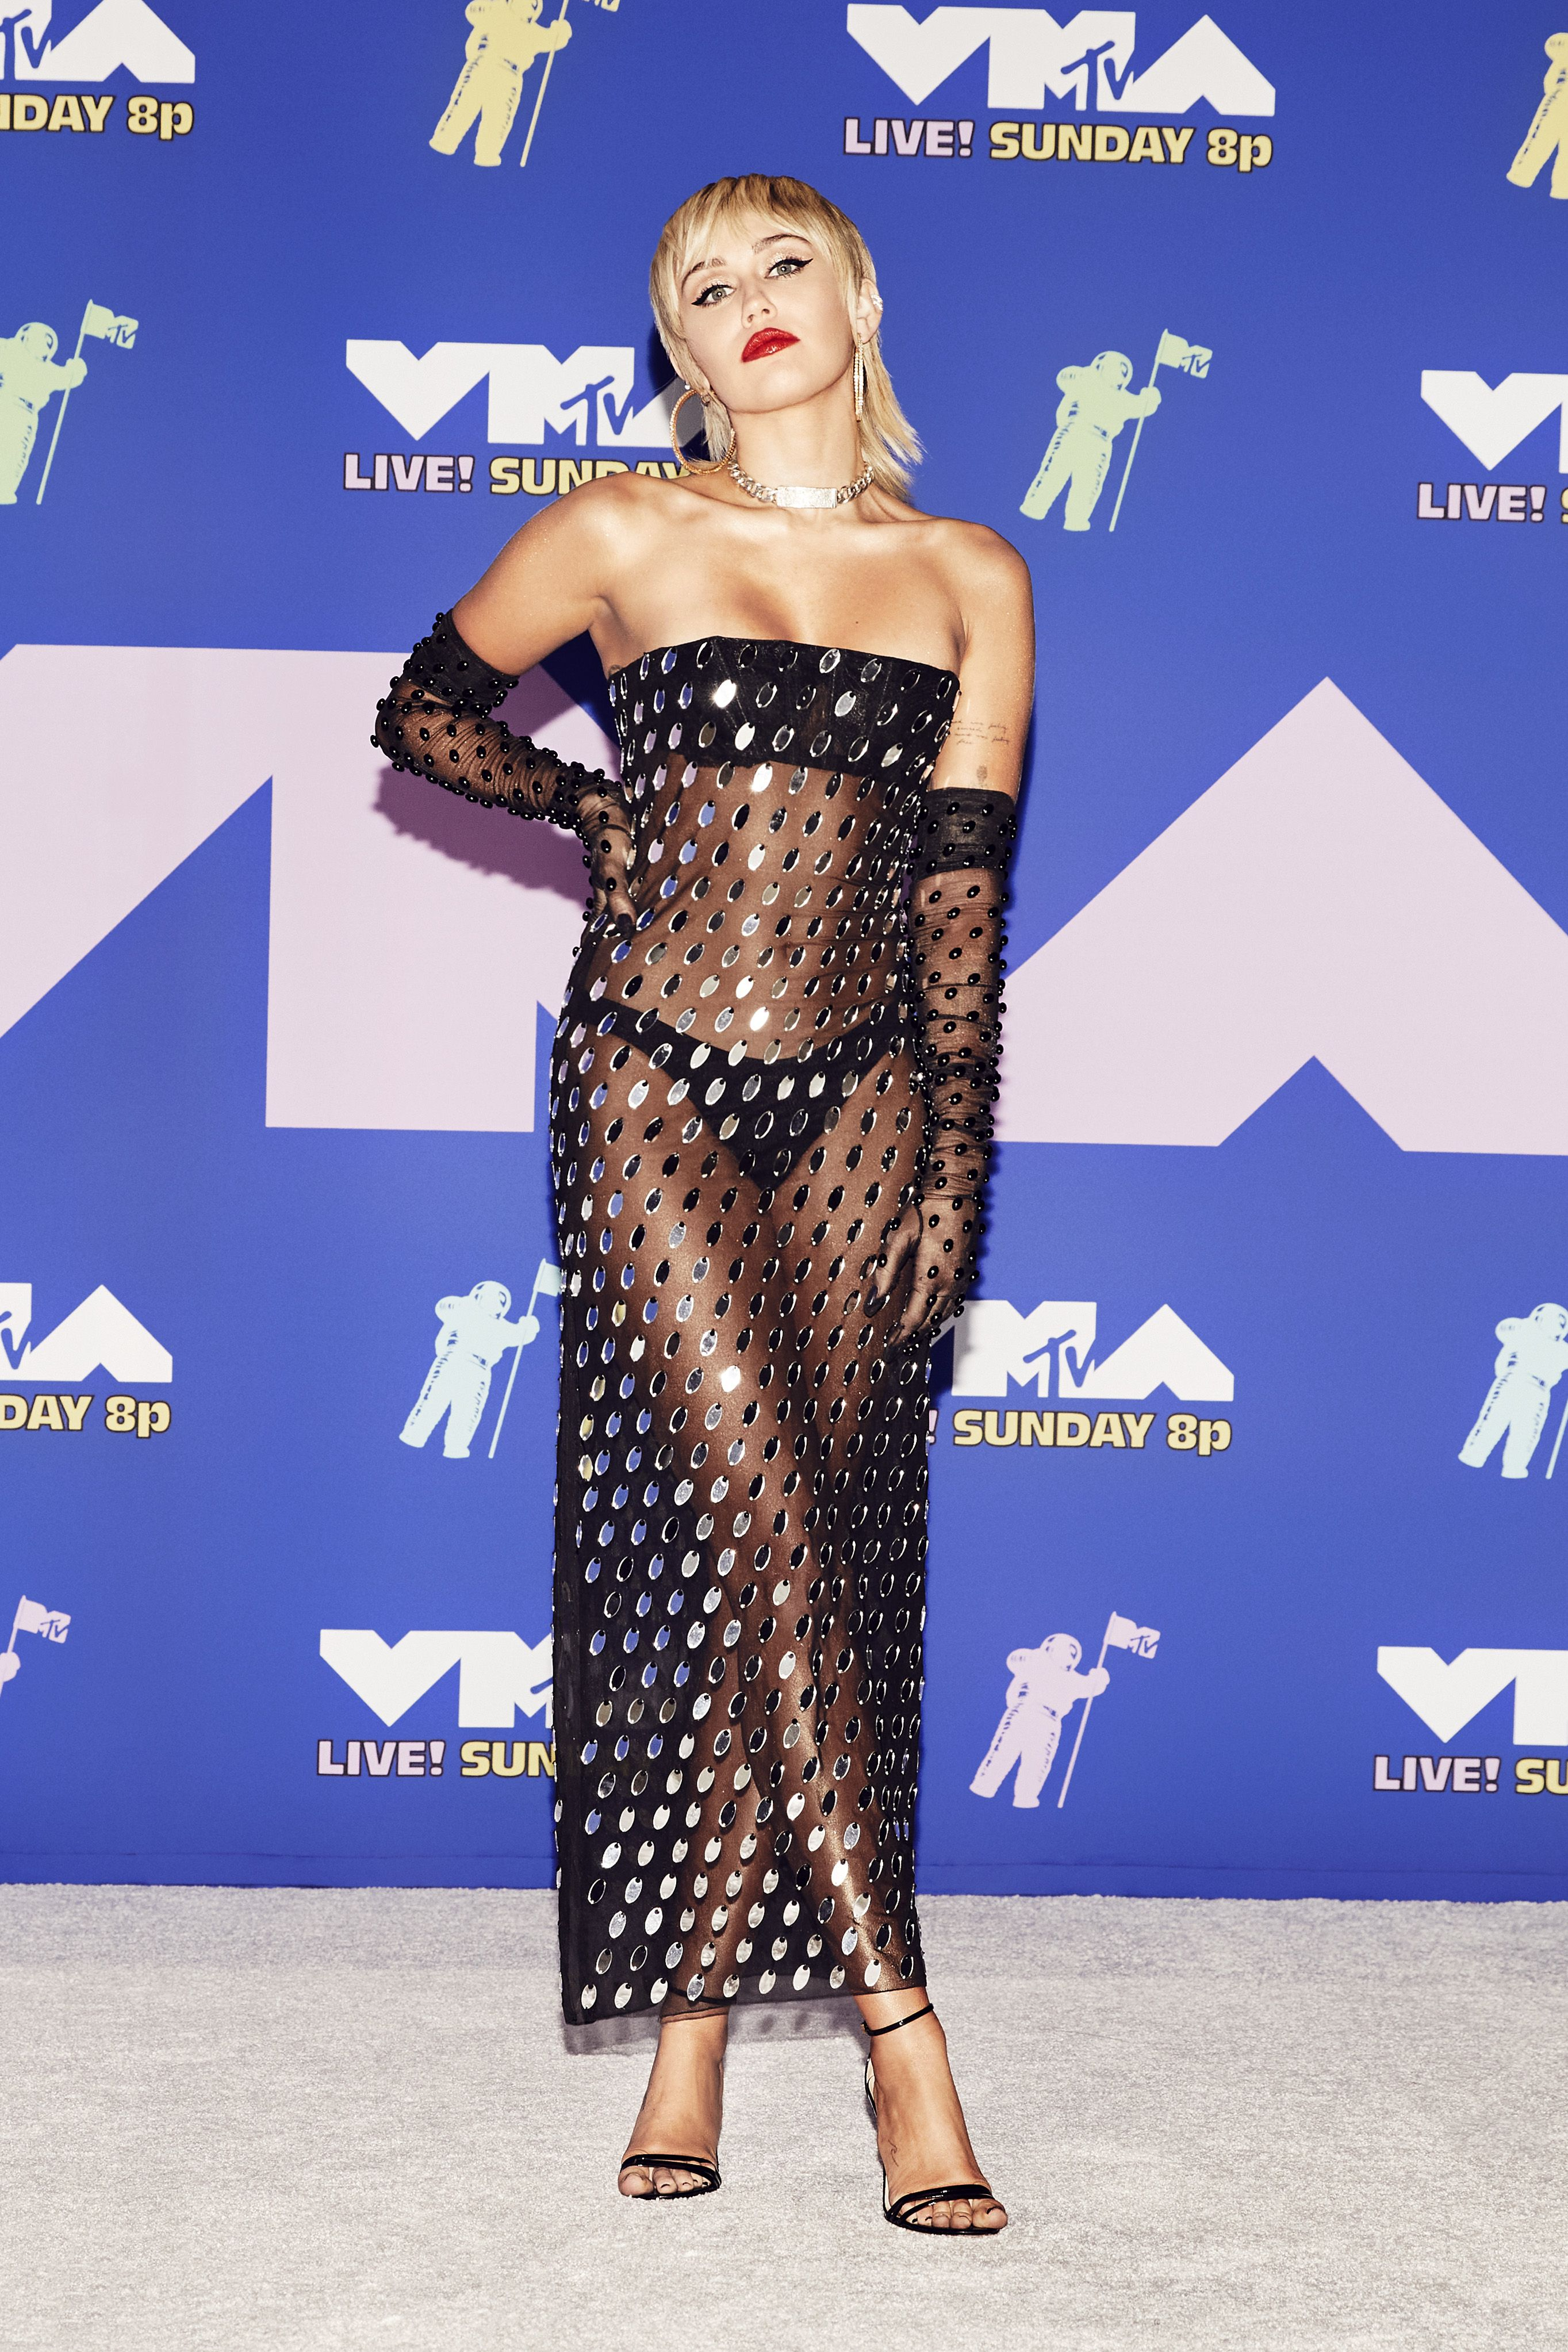 Miley Cyrus Vmas Outfit Is Sexy And Super Sheer